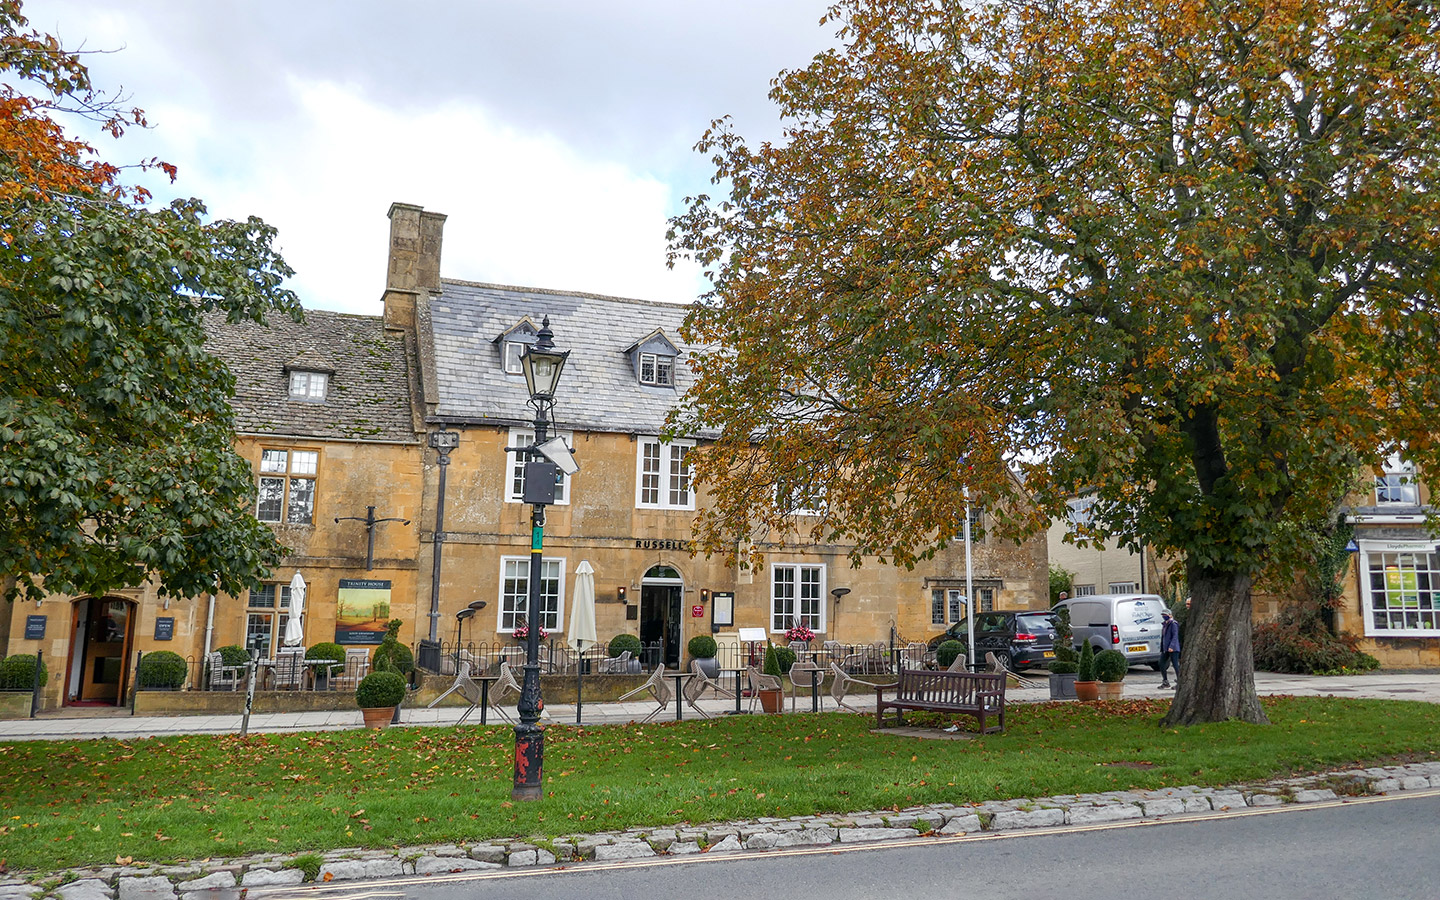 Russell's restaurant in Broadway, Cotswolds